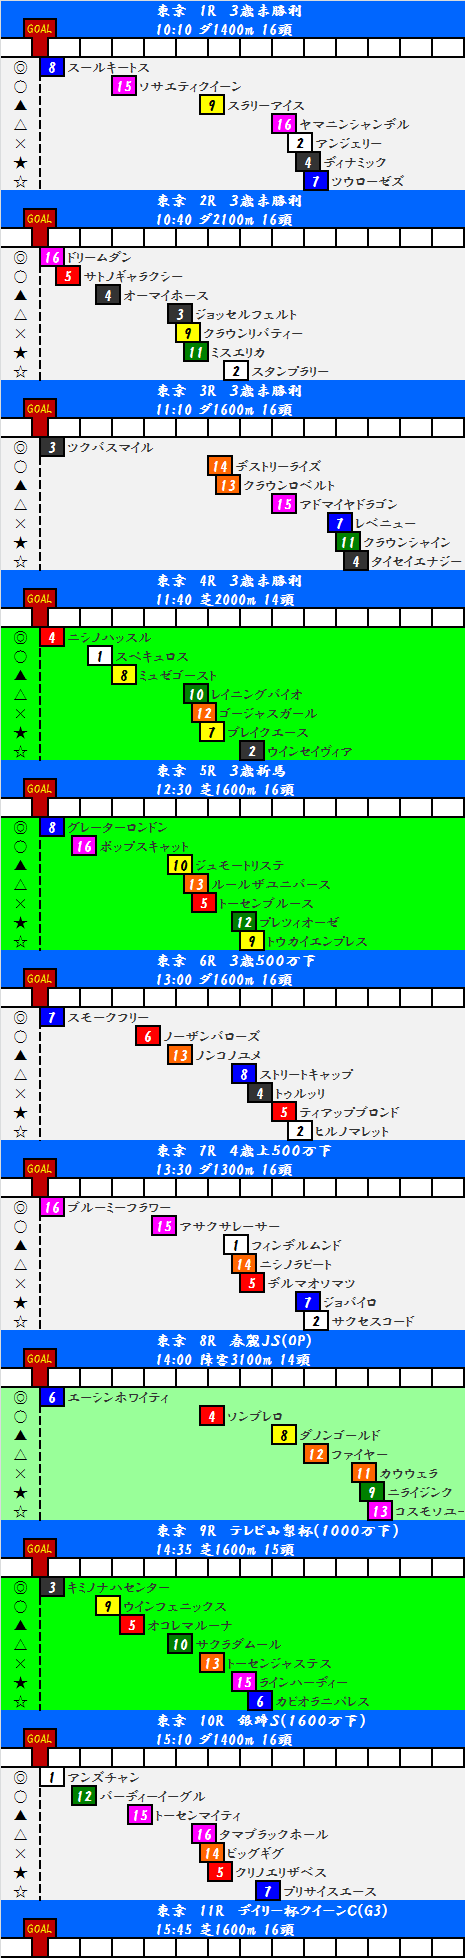 2015021401.png